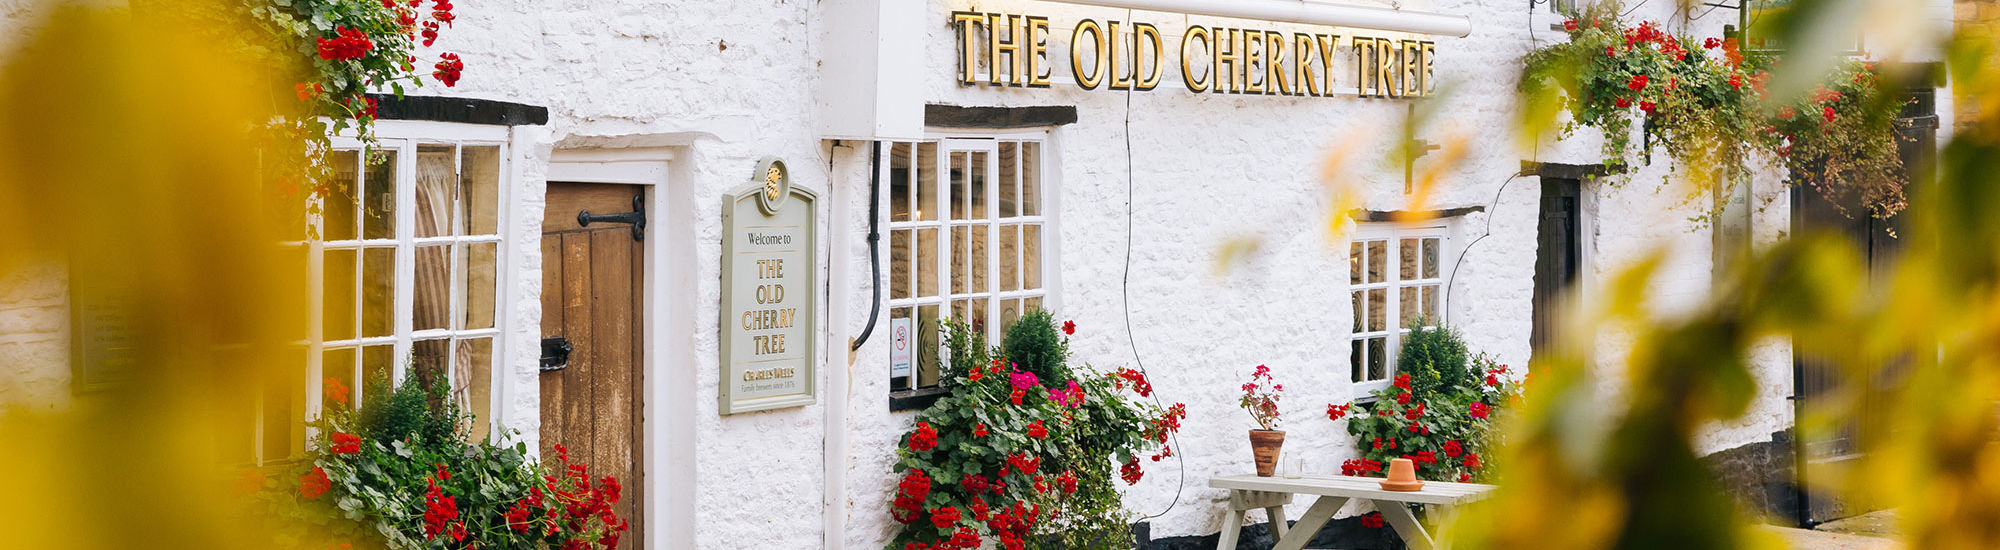 The Old Cherry Tree, Great Houghton